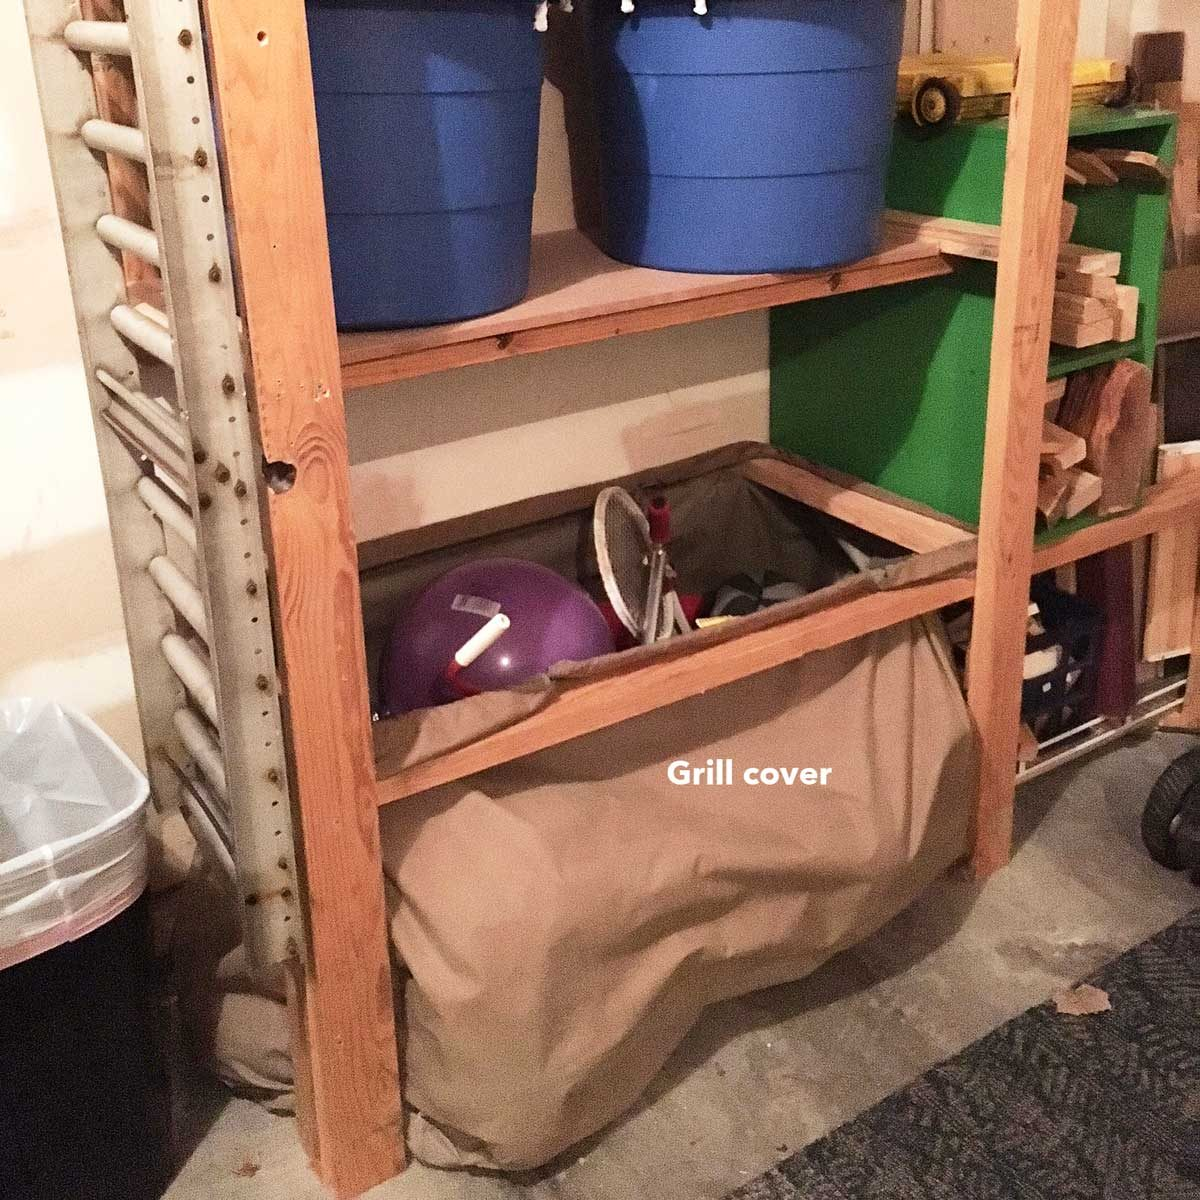 garage shelf bag grill cover storage